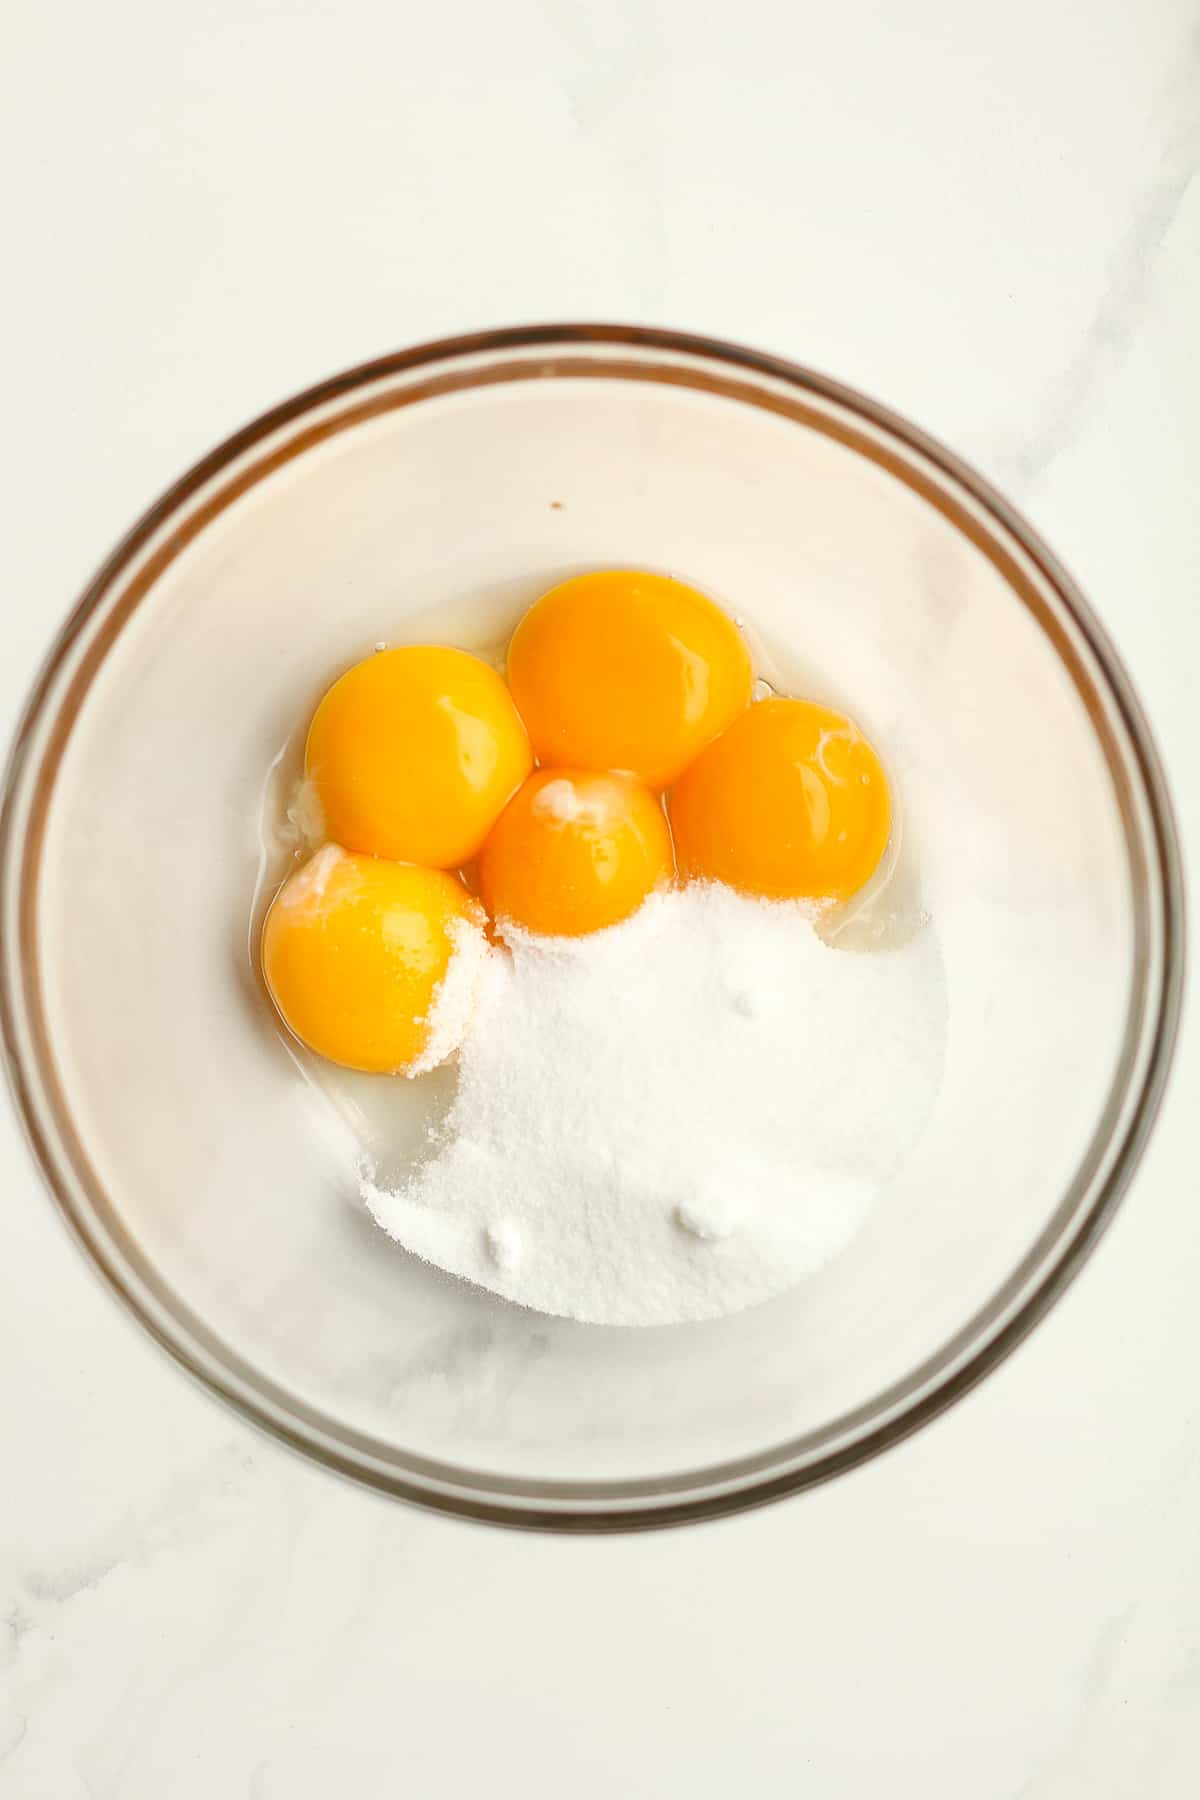 A bowl of 5 egg yolks with sugar.